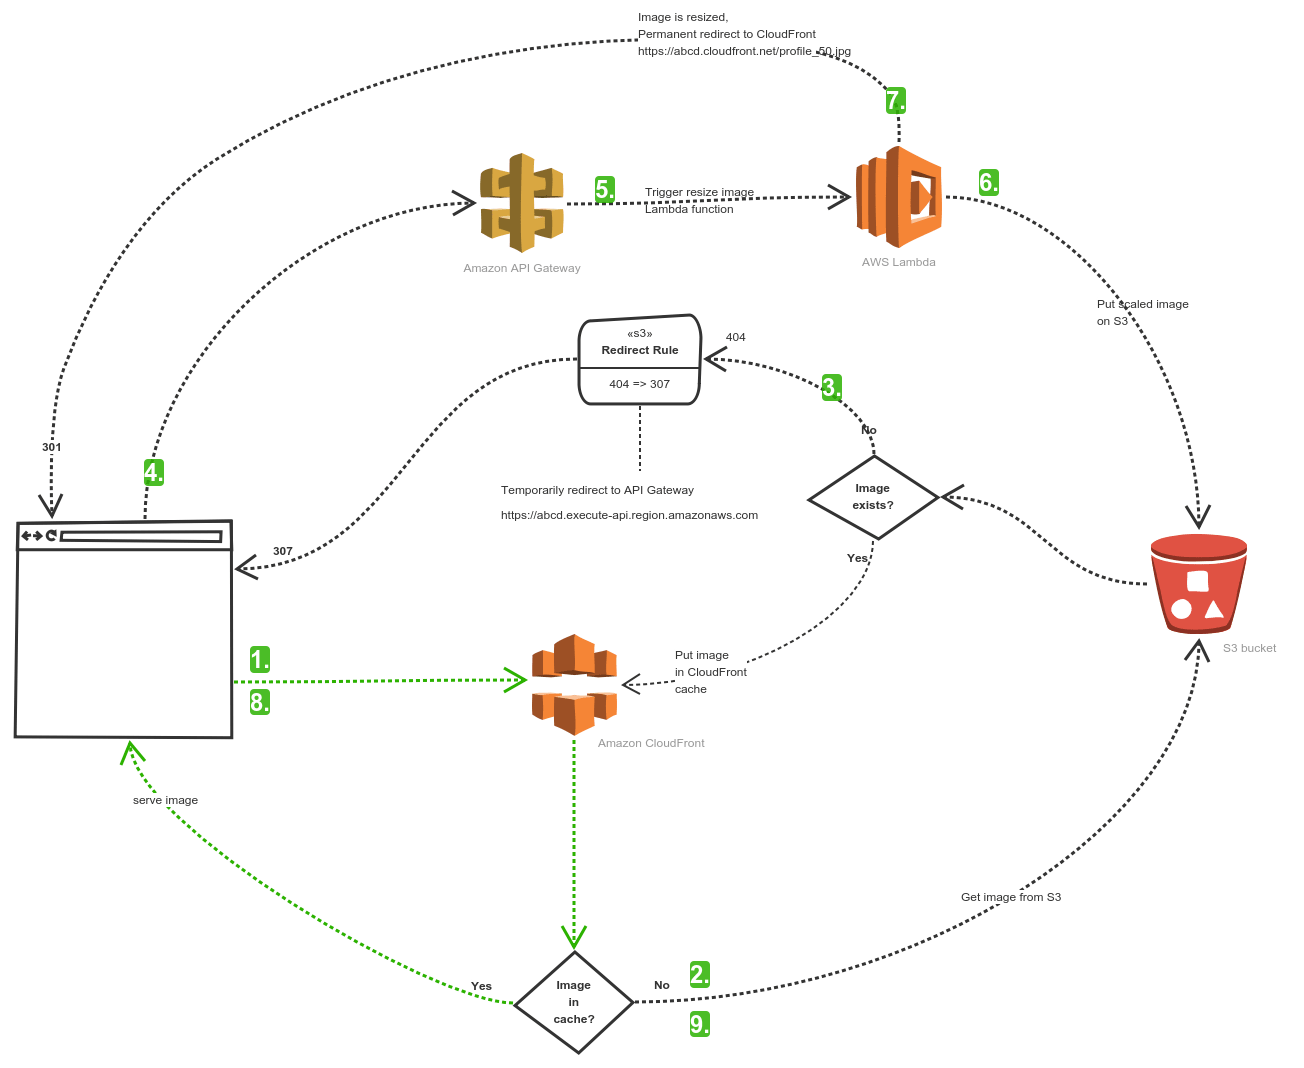 Serverless Image Resize With Amazon Lambda Function